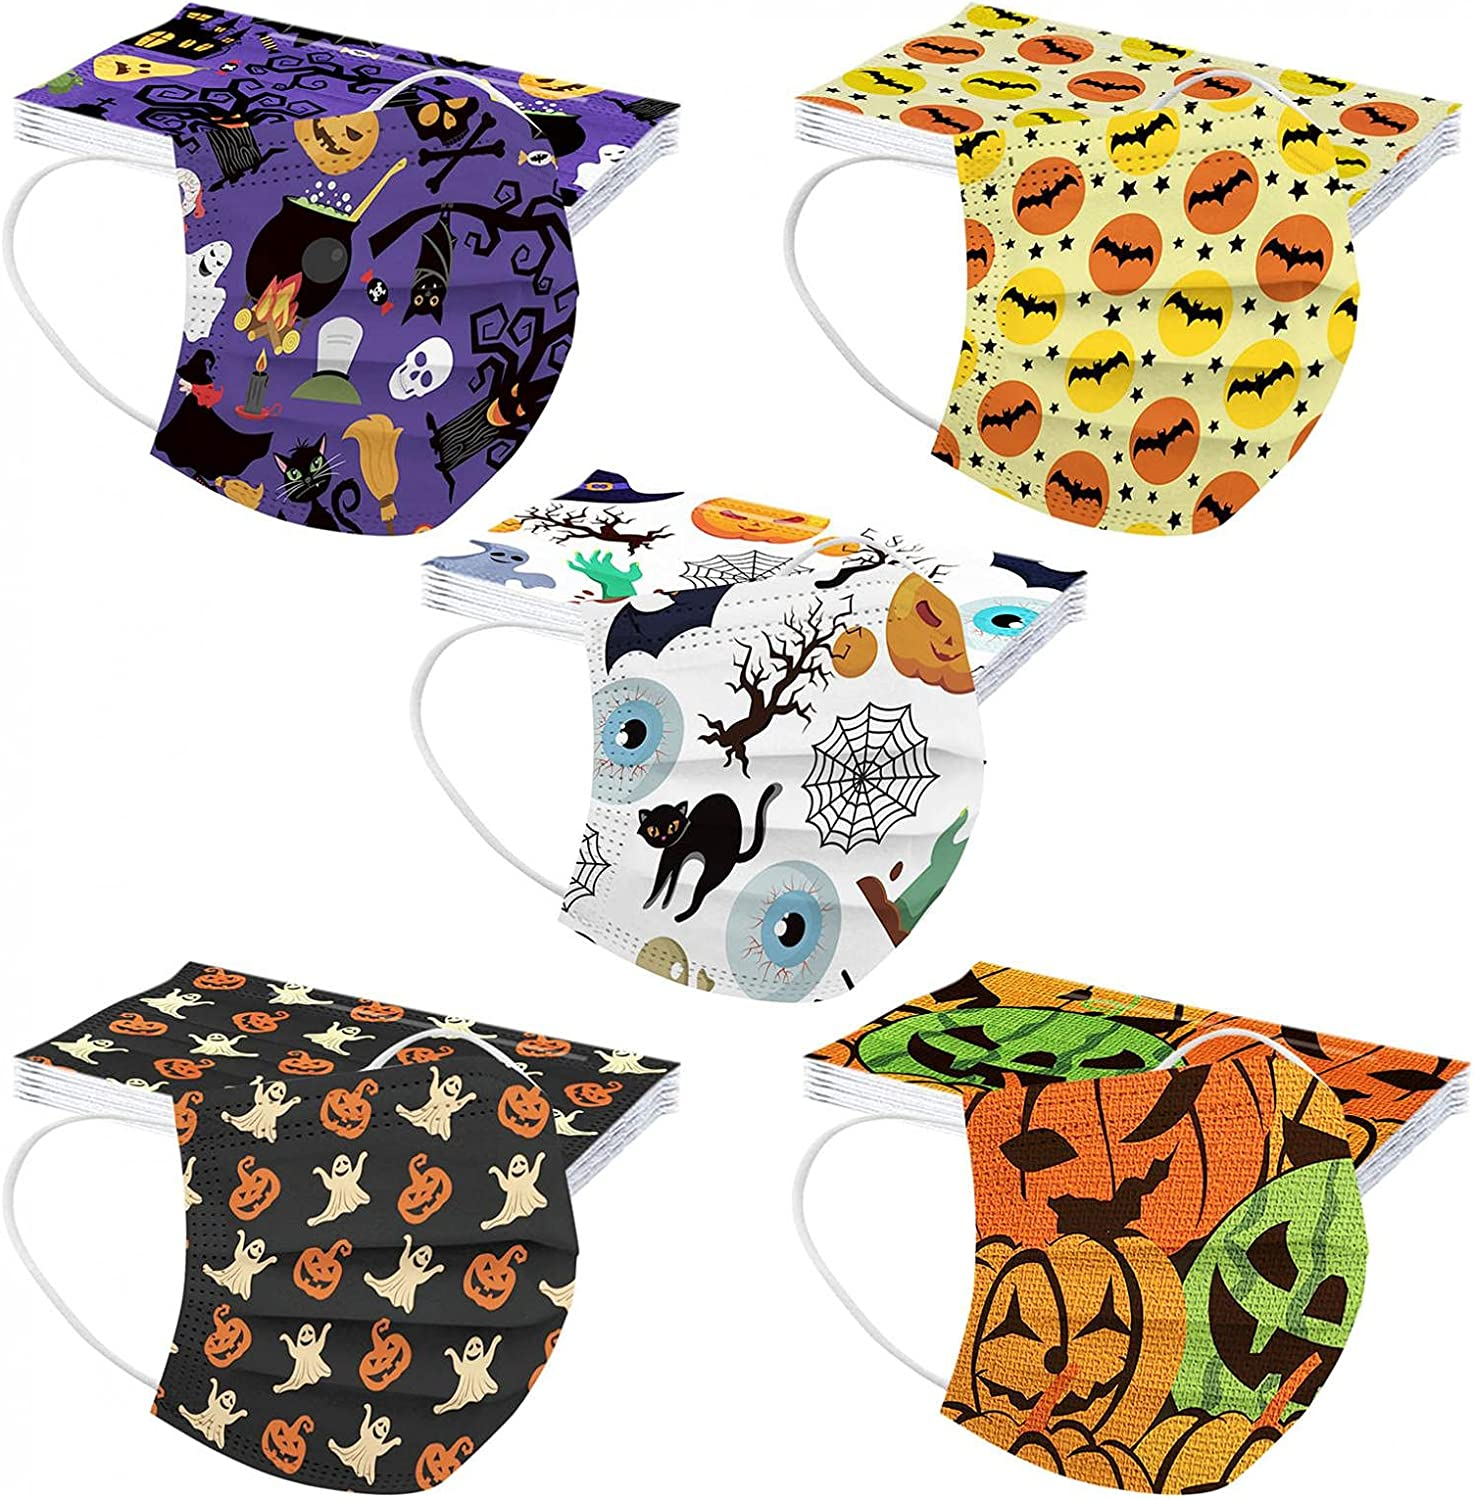 Kids Face Now free shipping Masks Halloween Quality inspection Disposable 50PCS 3Ply Breath Mask